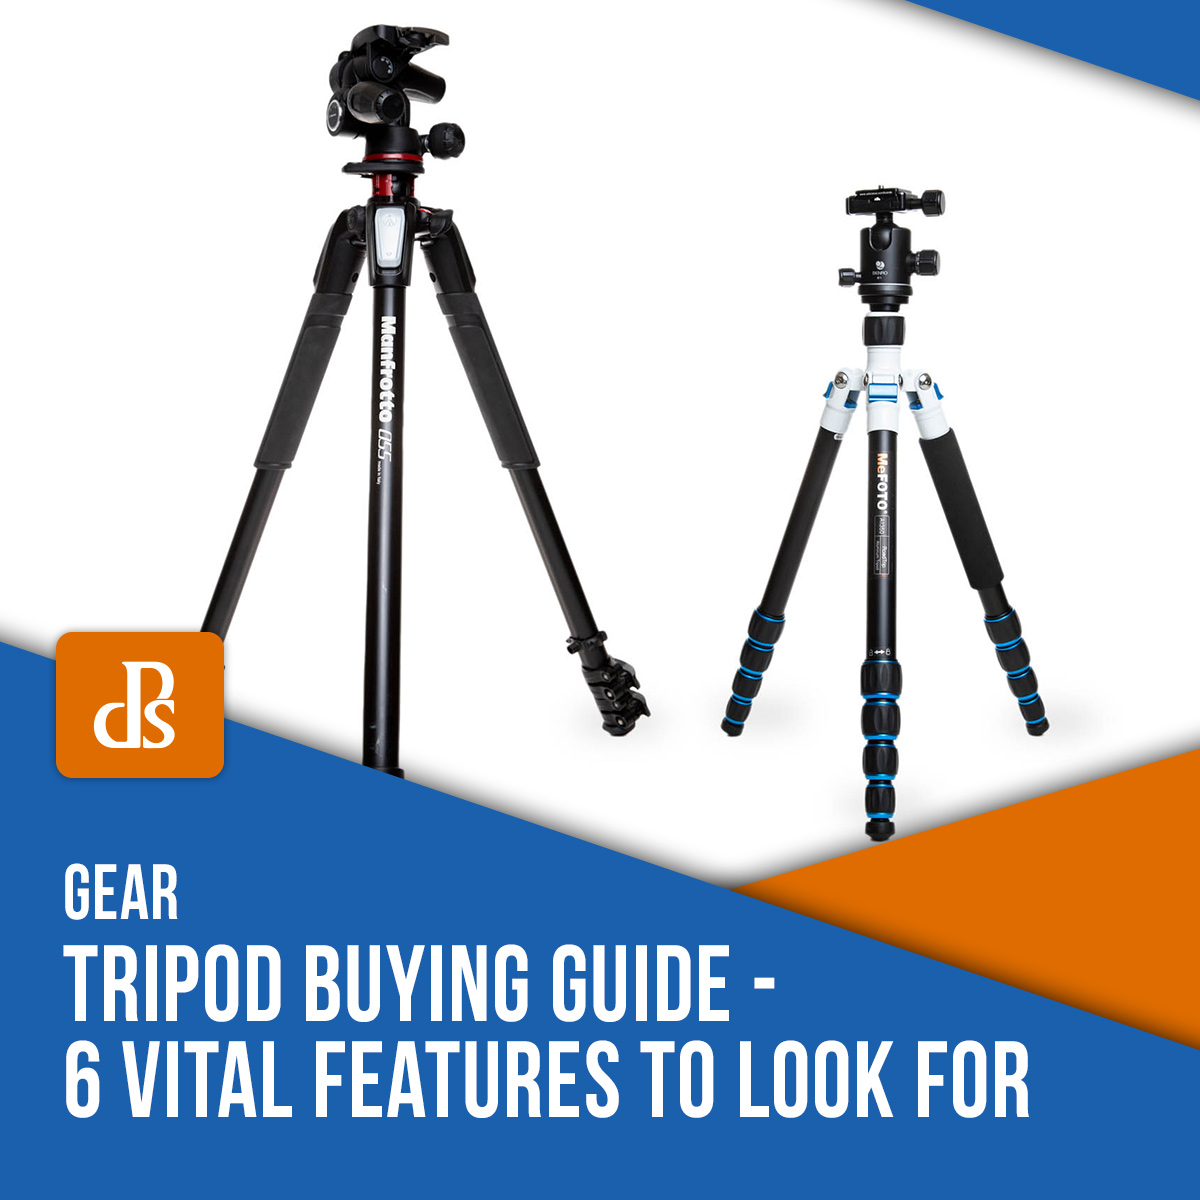 dps-tripod-buying-guide